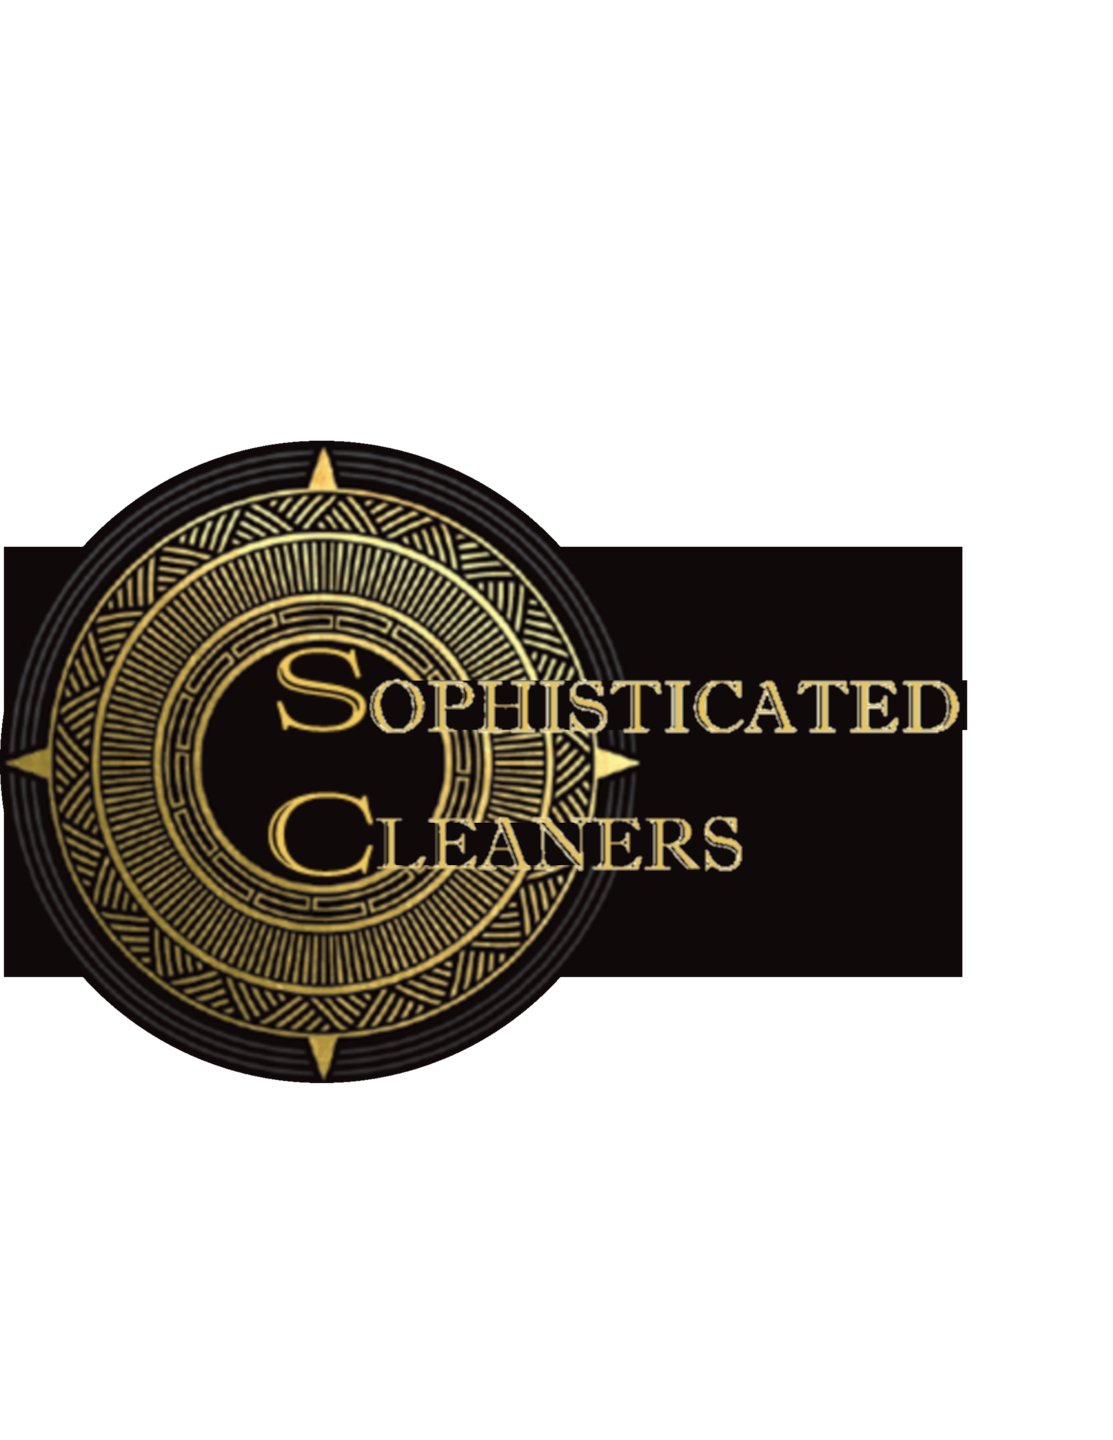 Sophisticated Cleaners